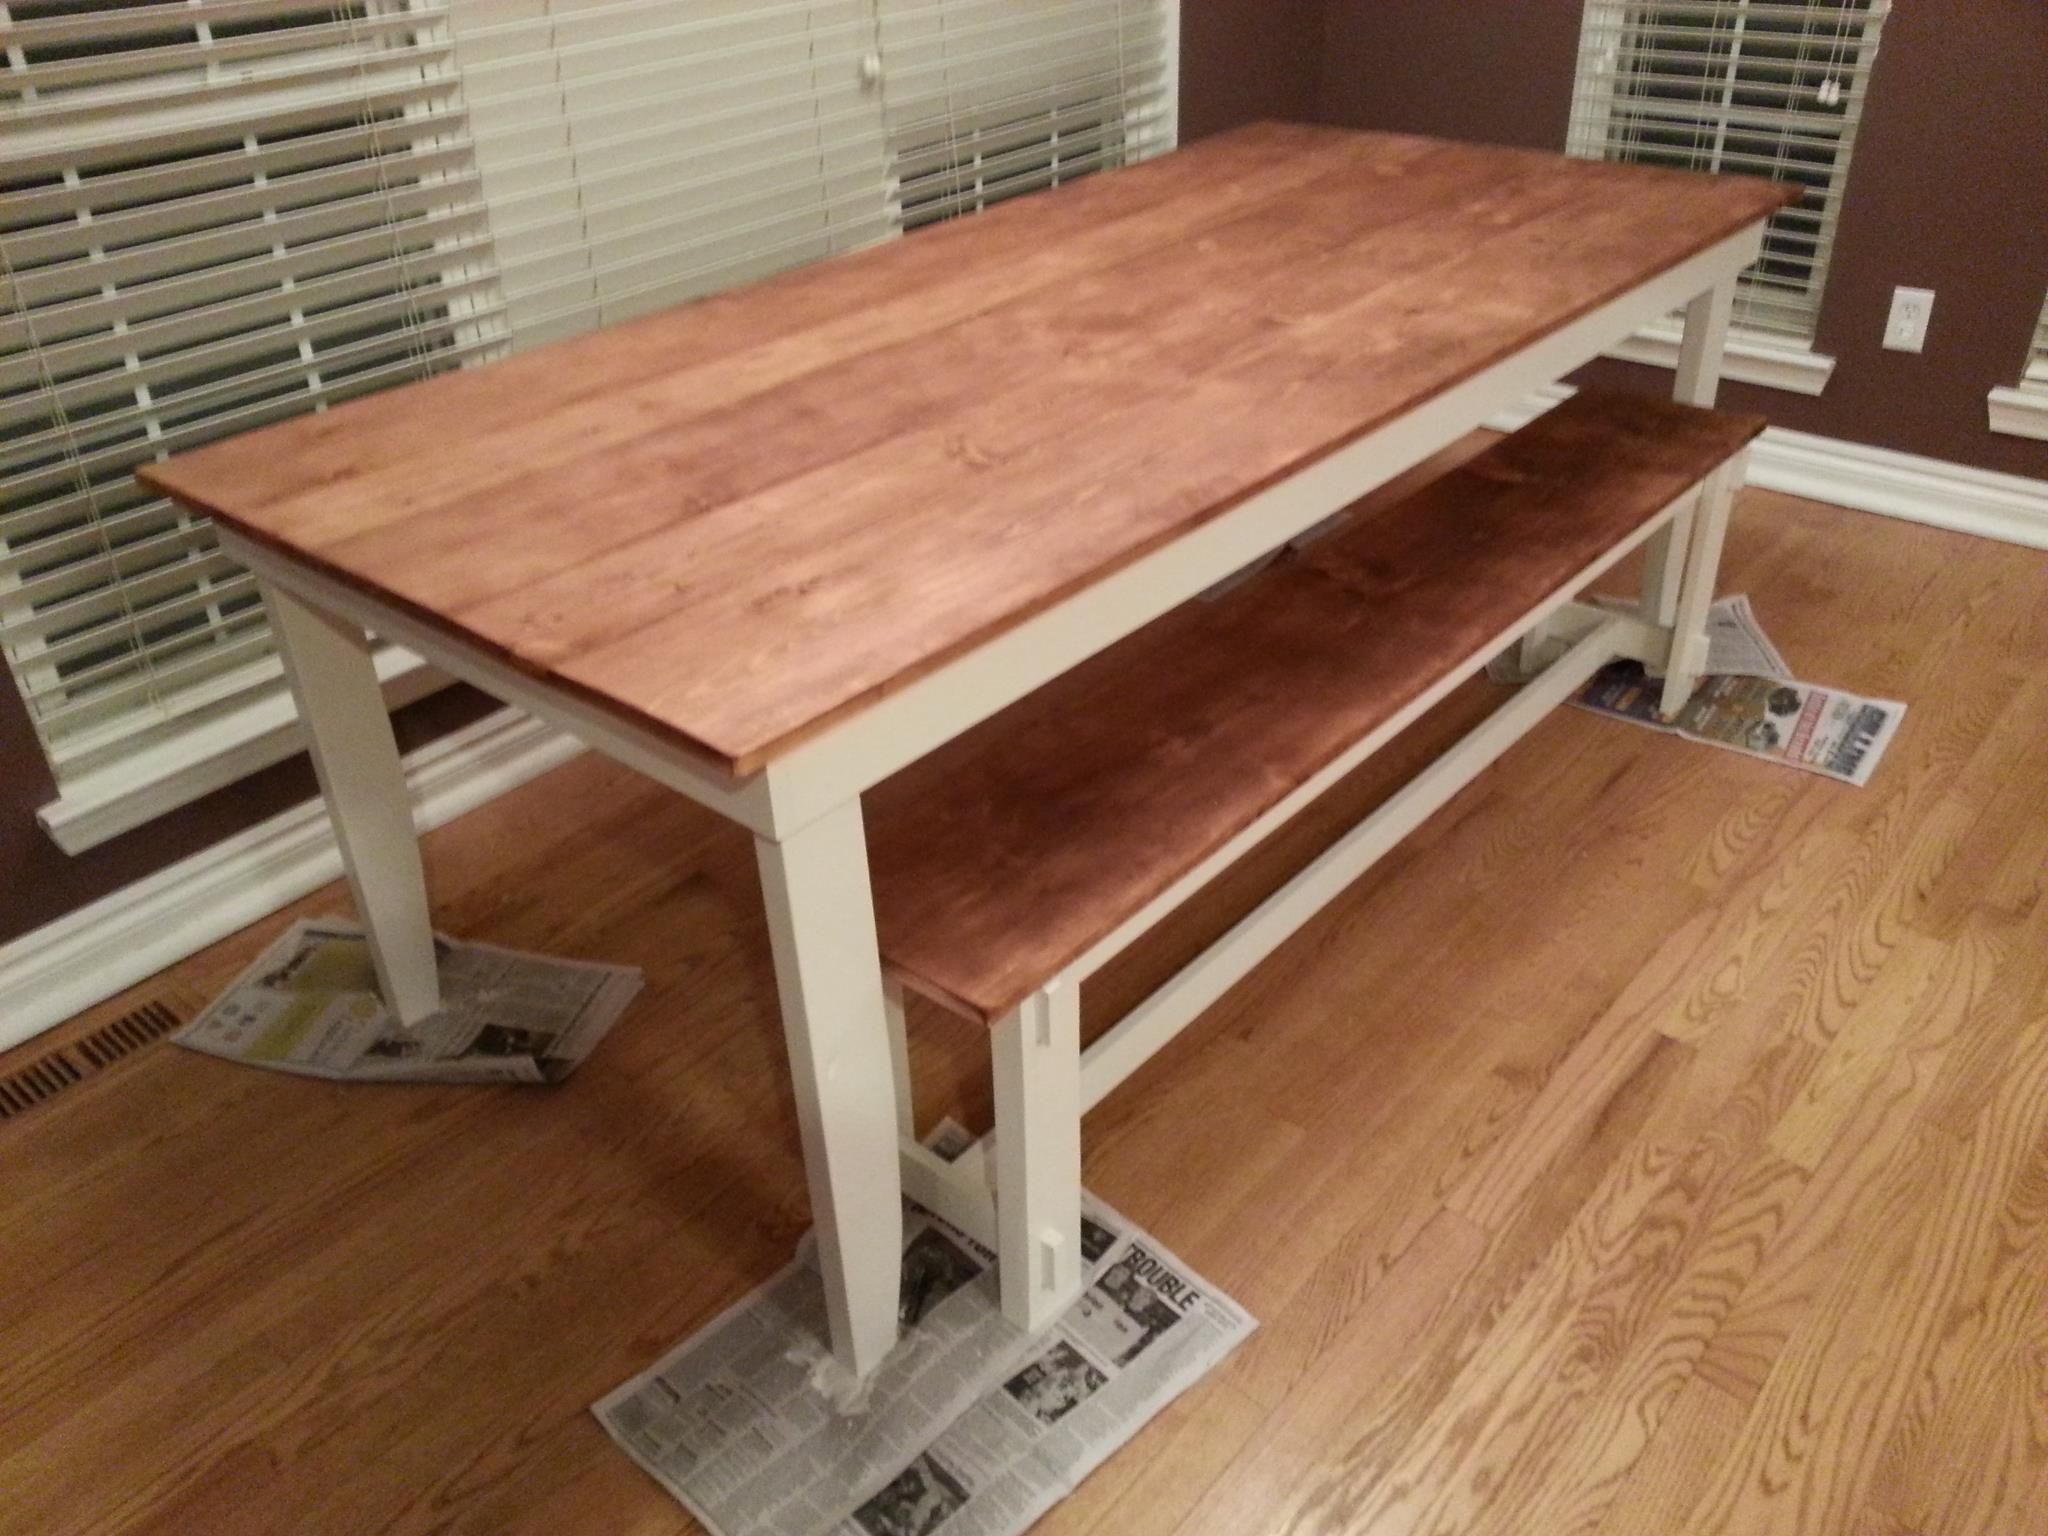 Rustic Table And Bench  Minwax Honey Stain  Wood Finishes Magnificent Rustic Kitchen Tables Decorating Design